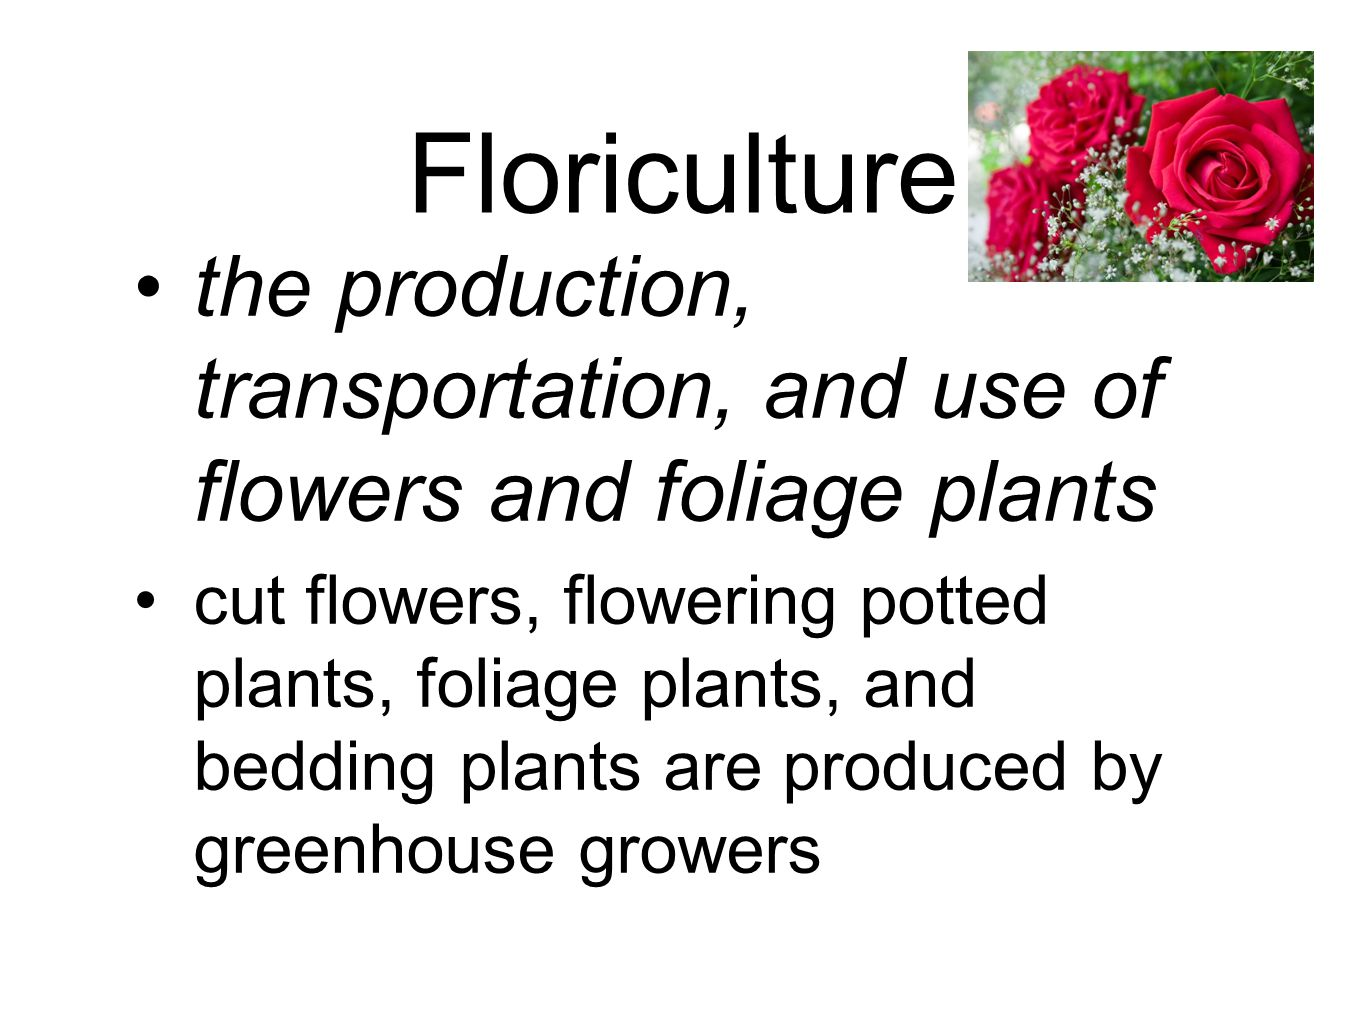 Floriculture the production, transportation, and use of flowers and foliage plants.